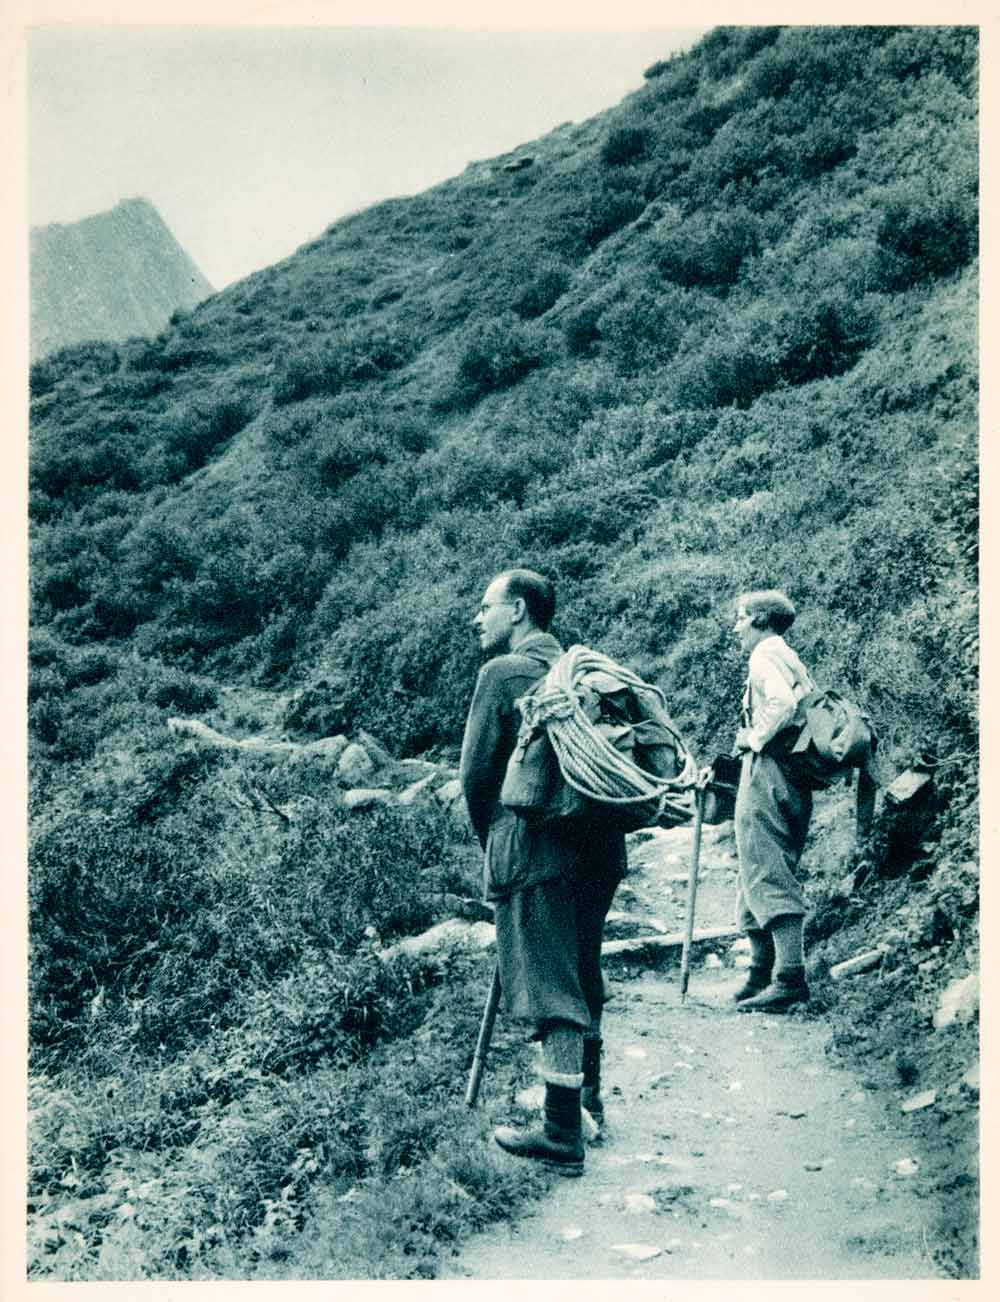 1937 Photogravure Vent Valley Path Otztal Alps Tyrol Austria Arthur XGDA6